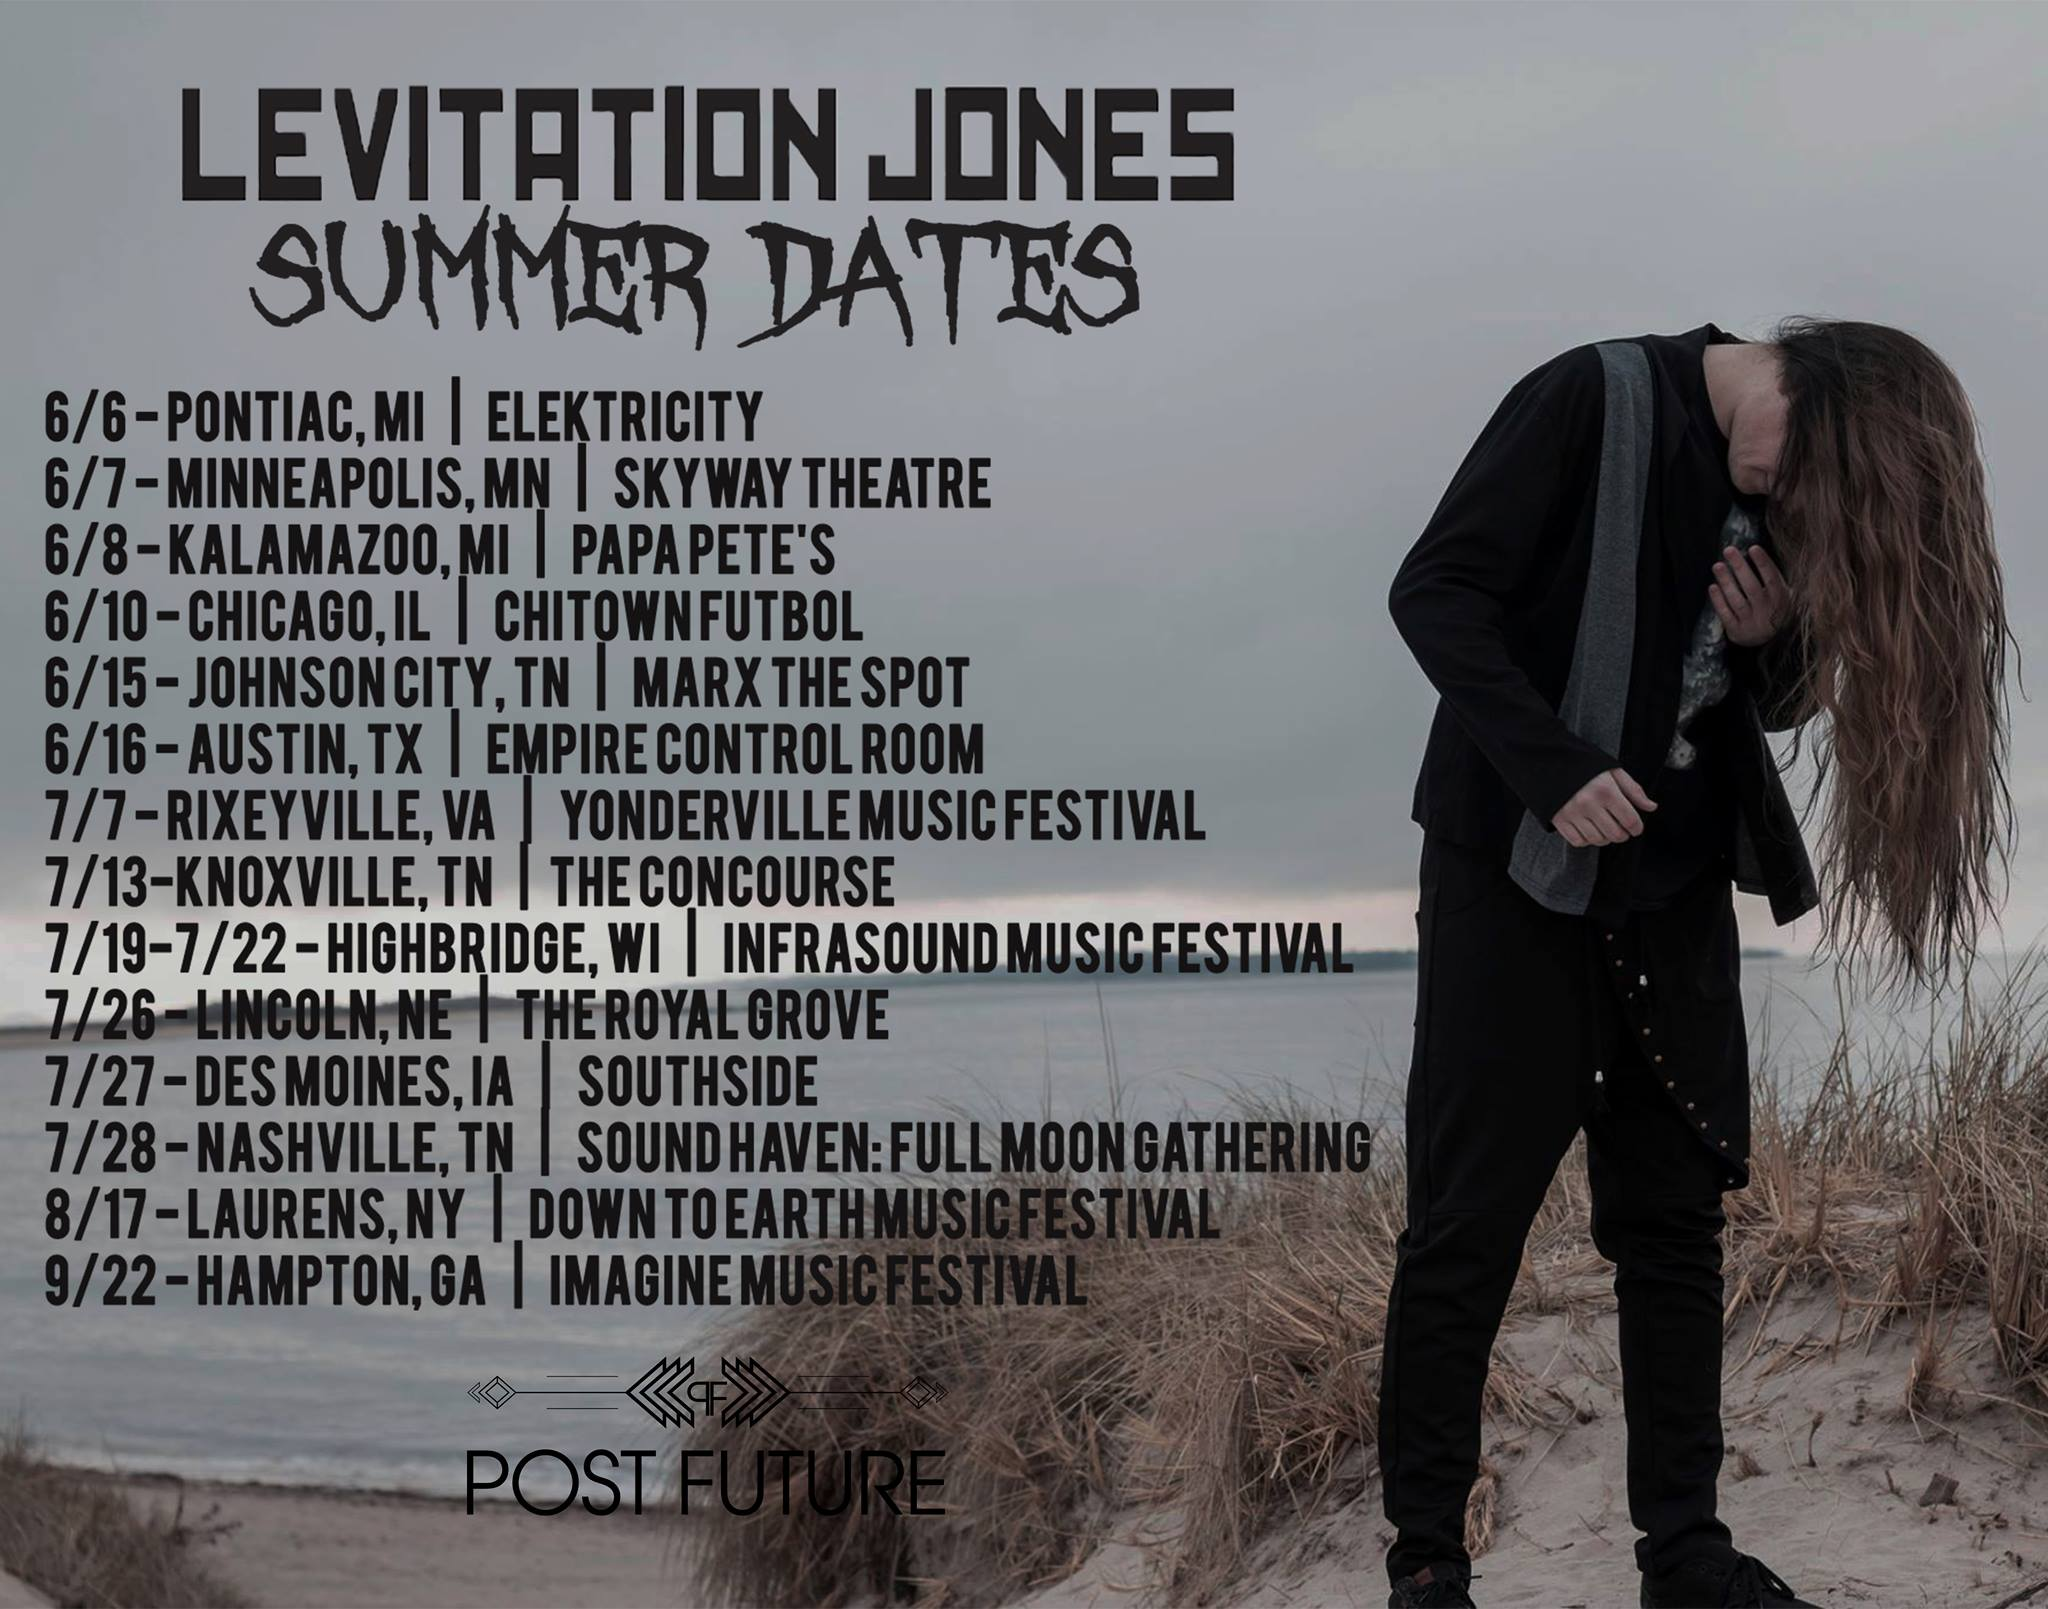 Levitation Jones Summer 18